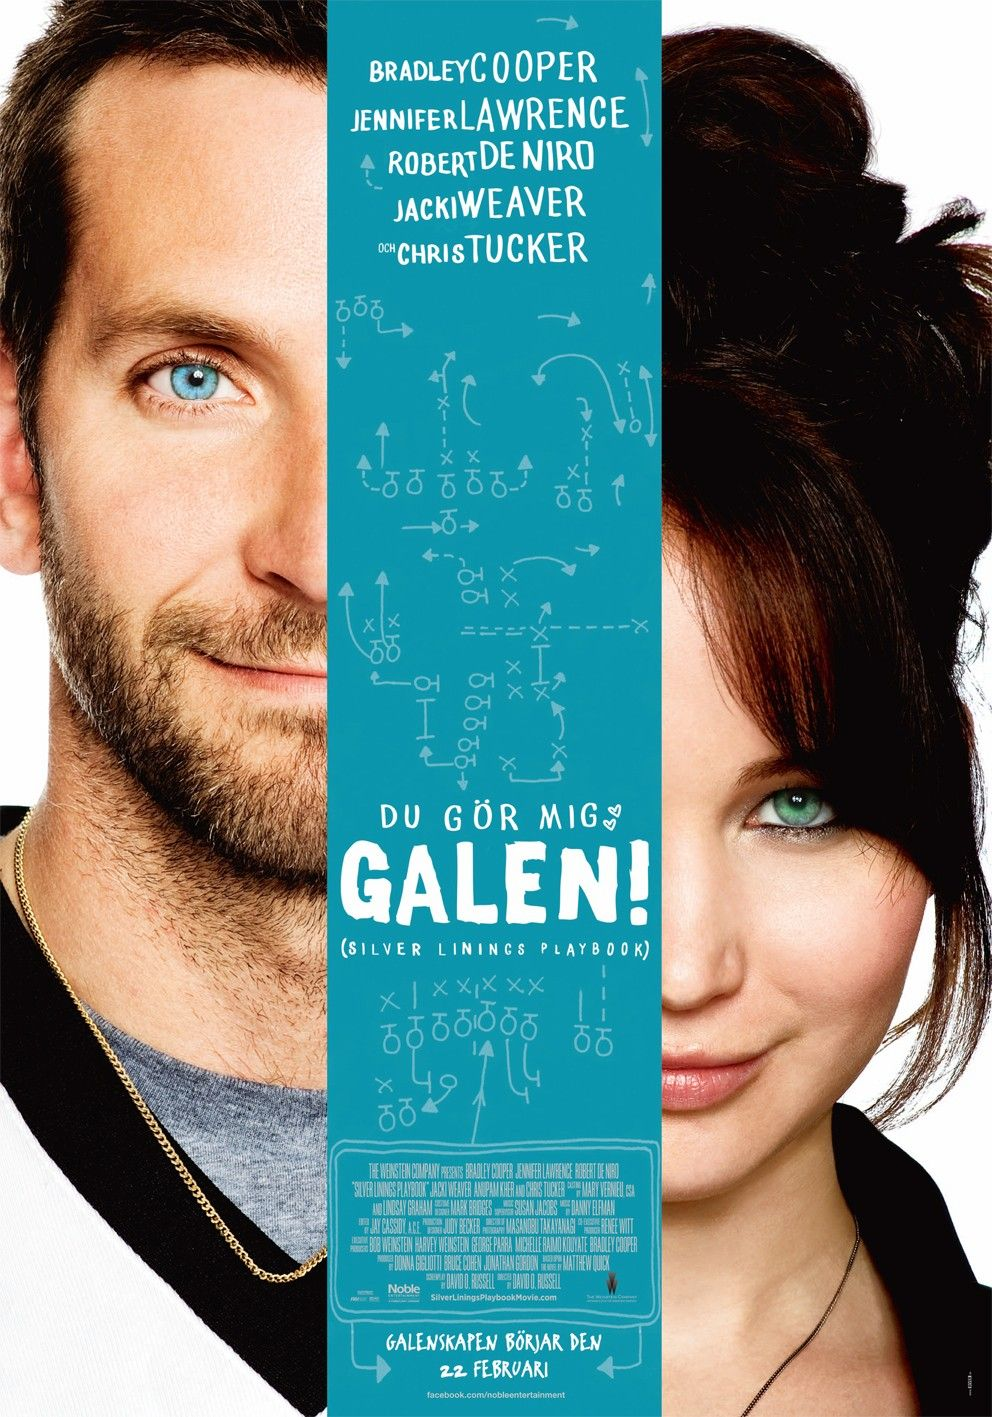 silver linings playbook loved it solid movies pinterest